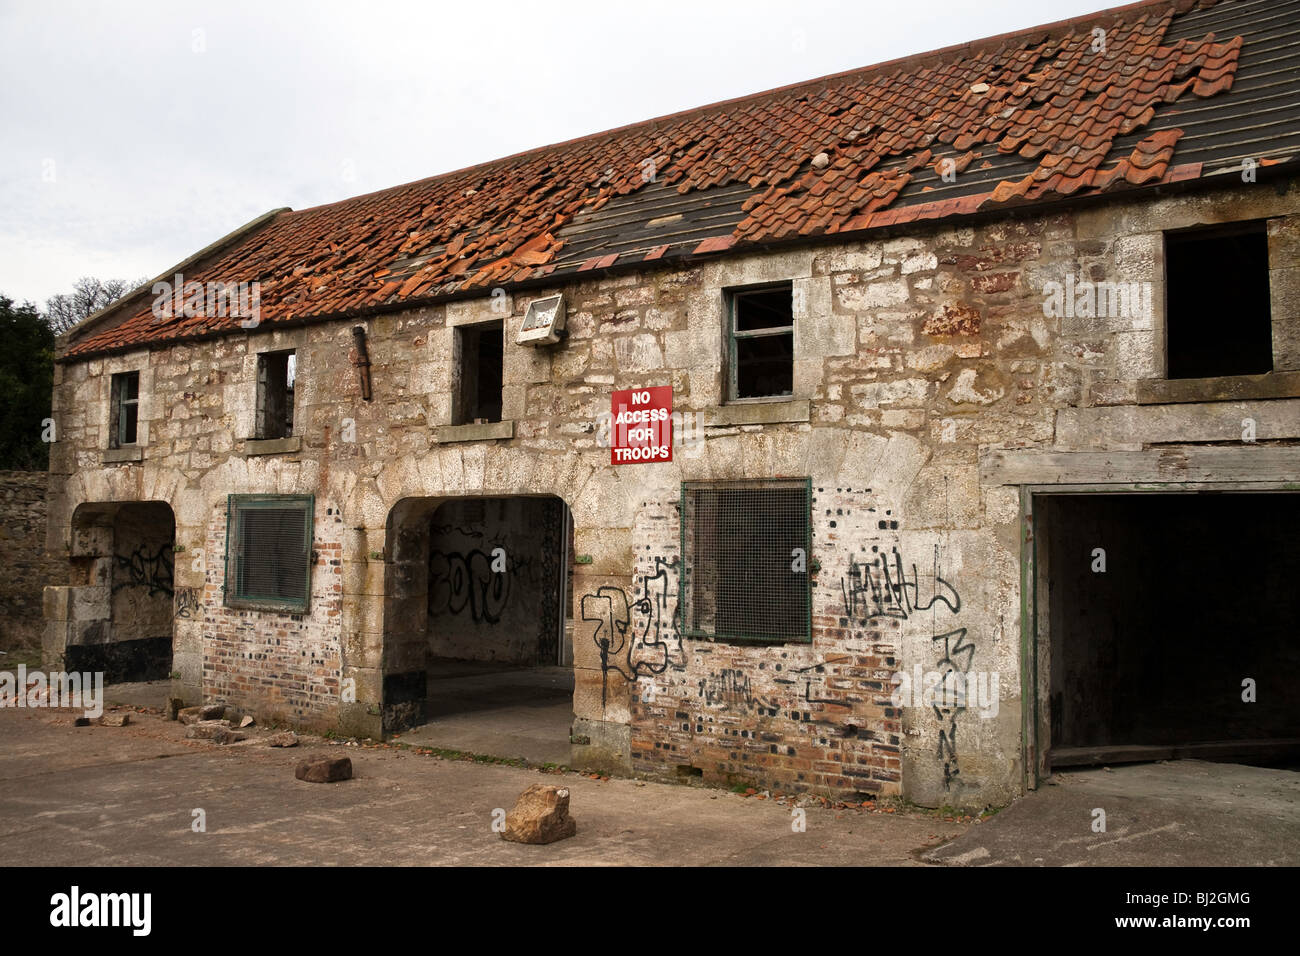 A deserted, run-down building in a state of disrepair. A sign on the wall reads 'No Access for Troops' - Stock Image